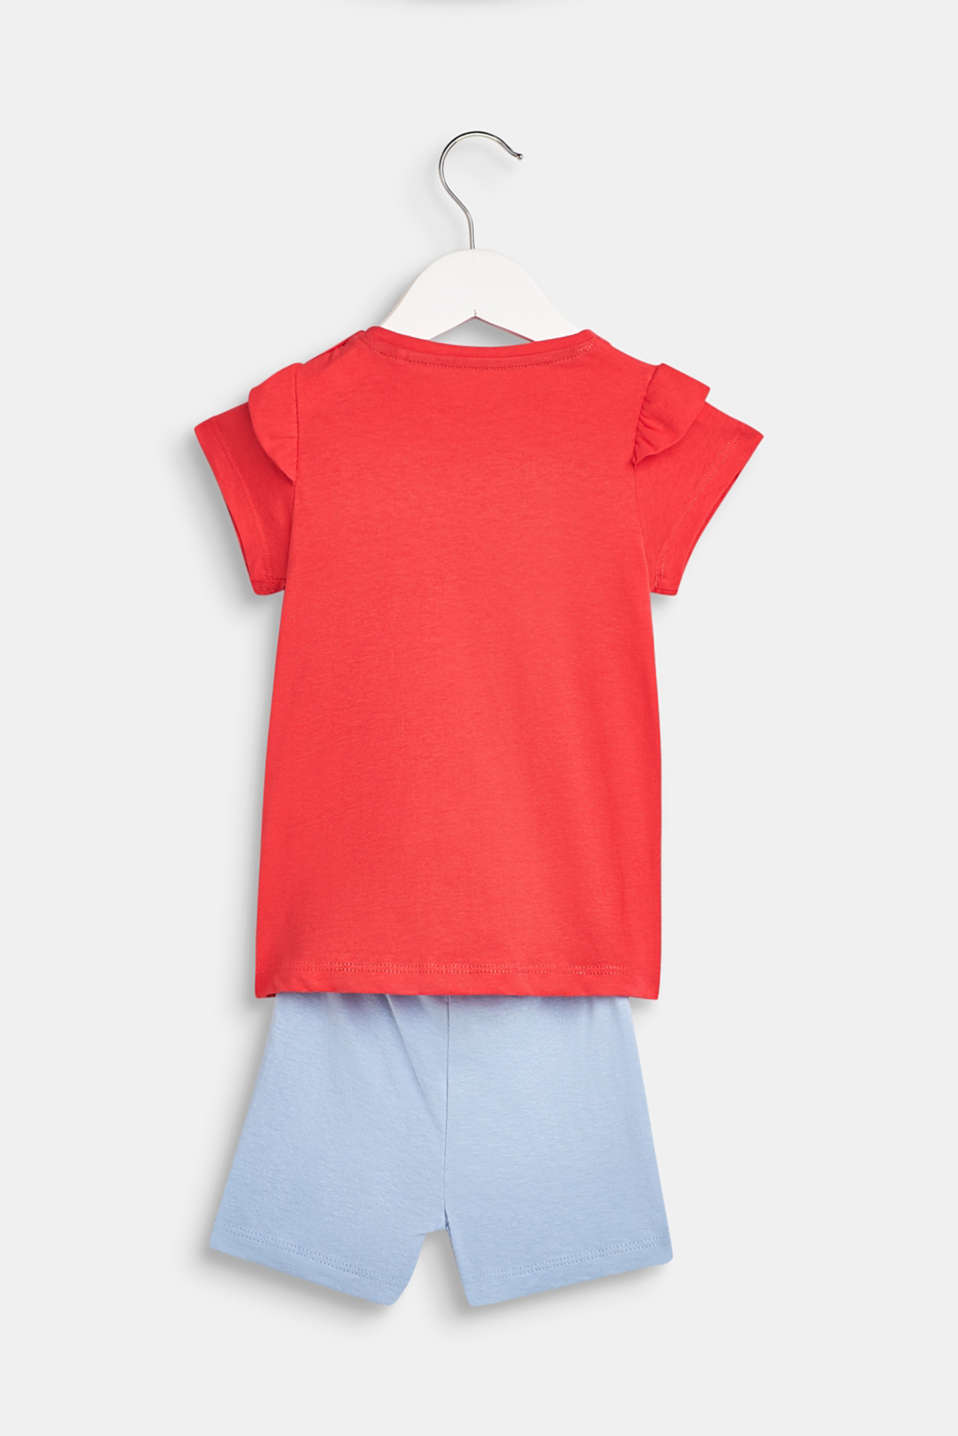 T-shirt and shorts set, 100% cotton, LCWATERMELON, detail image number 1